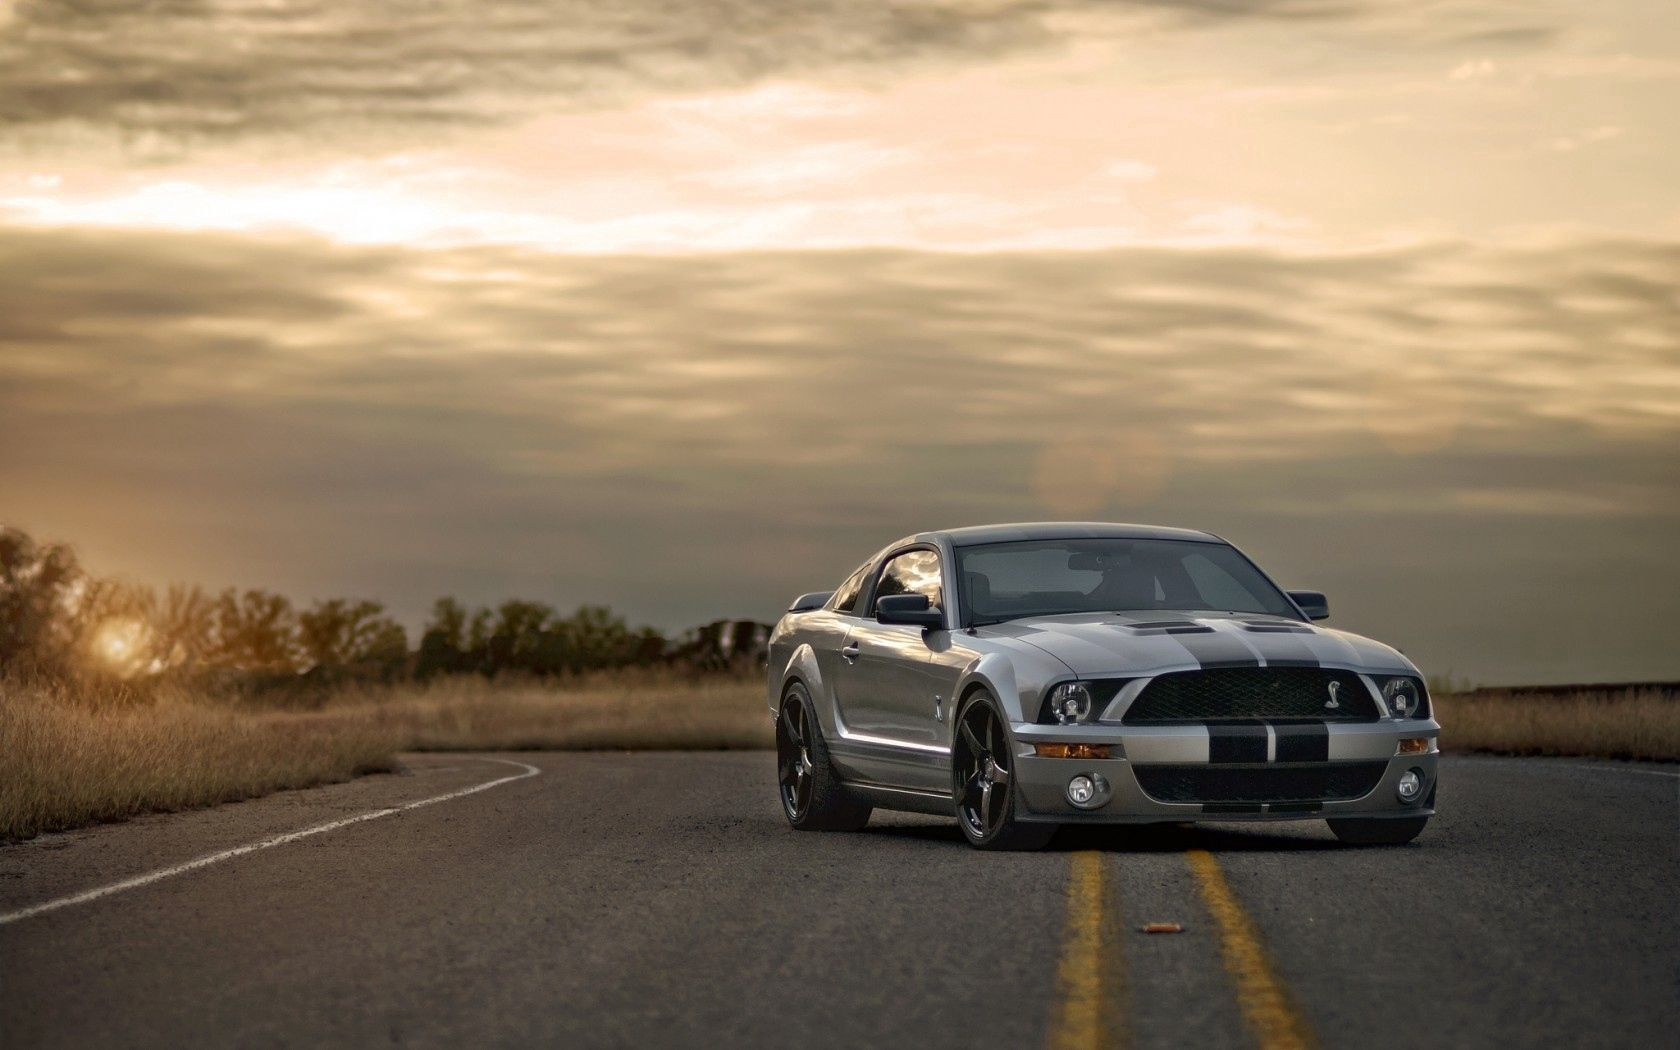 154328 download wallpaper Sunset, Ford, Mustang, Cars, Road, Silver, Silvery, Muscle Car, Shelby screensavers and pictures for free